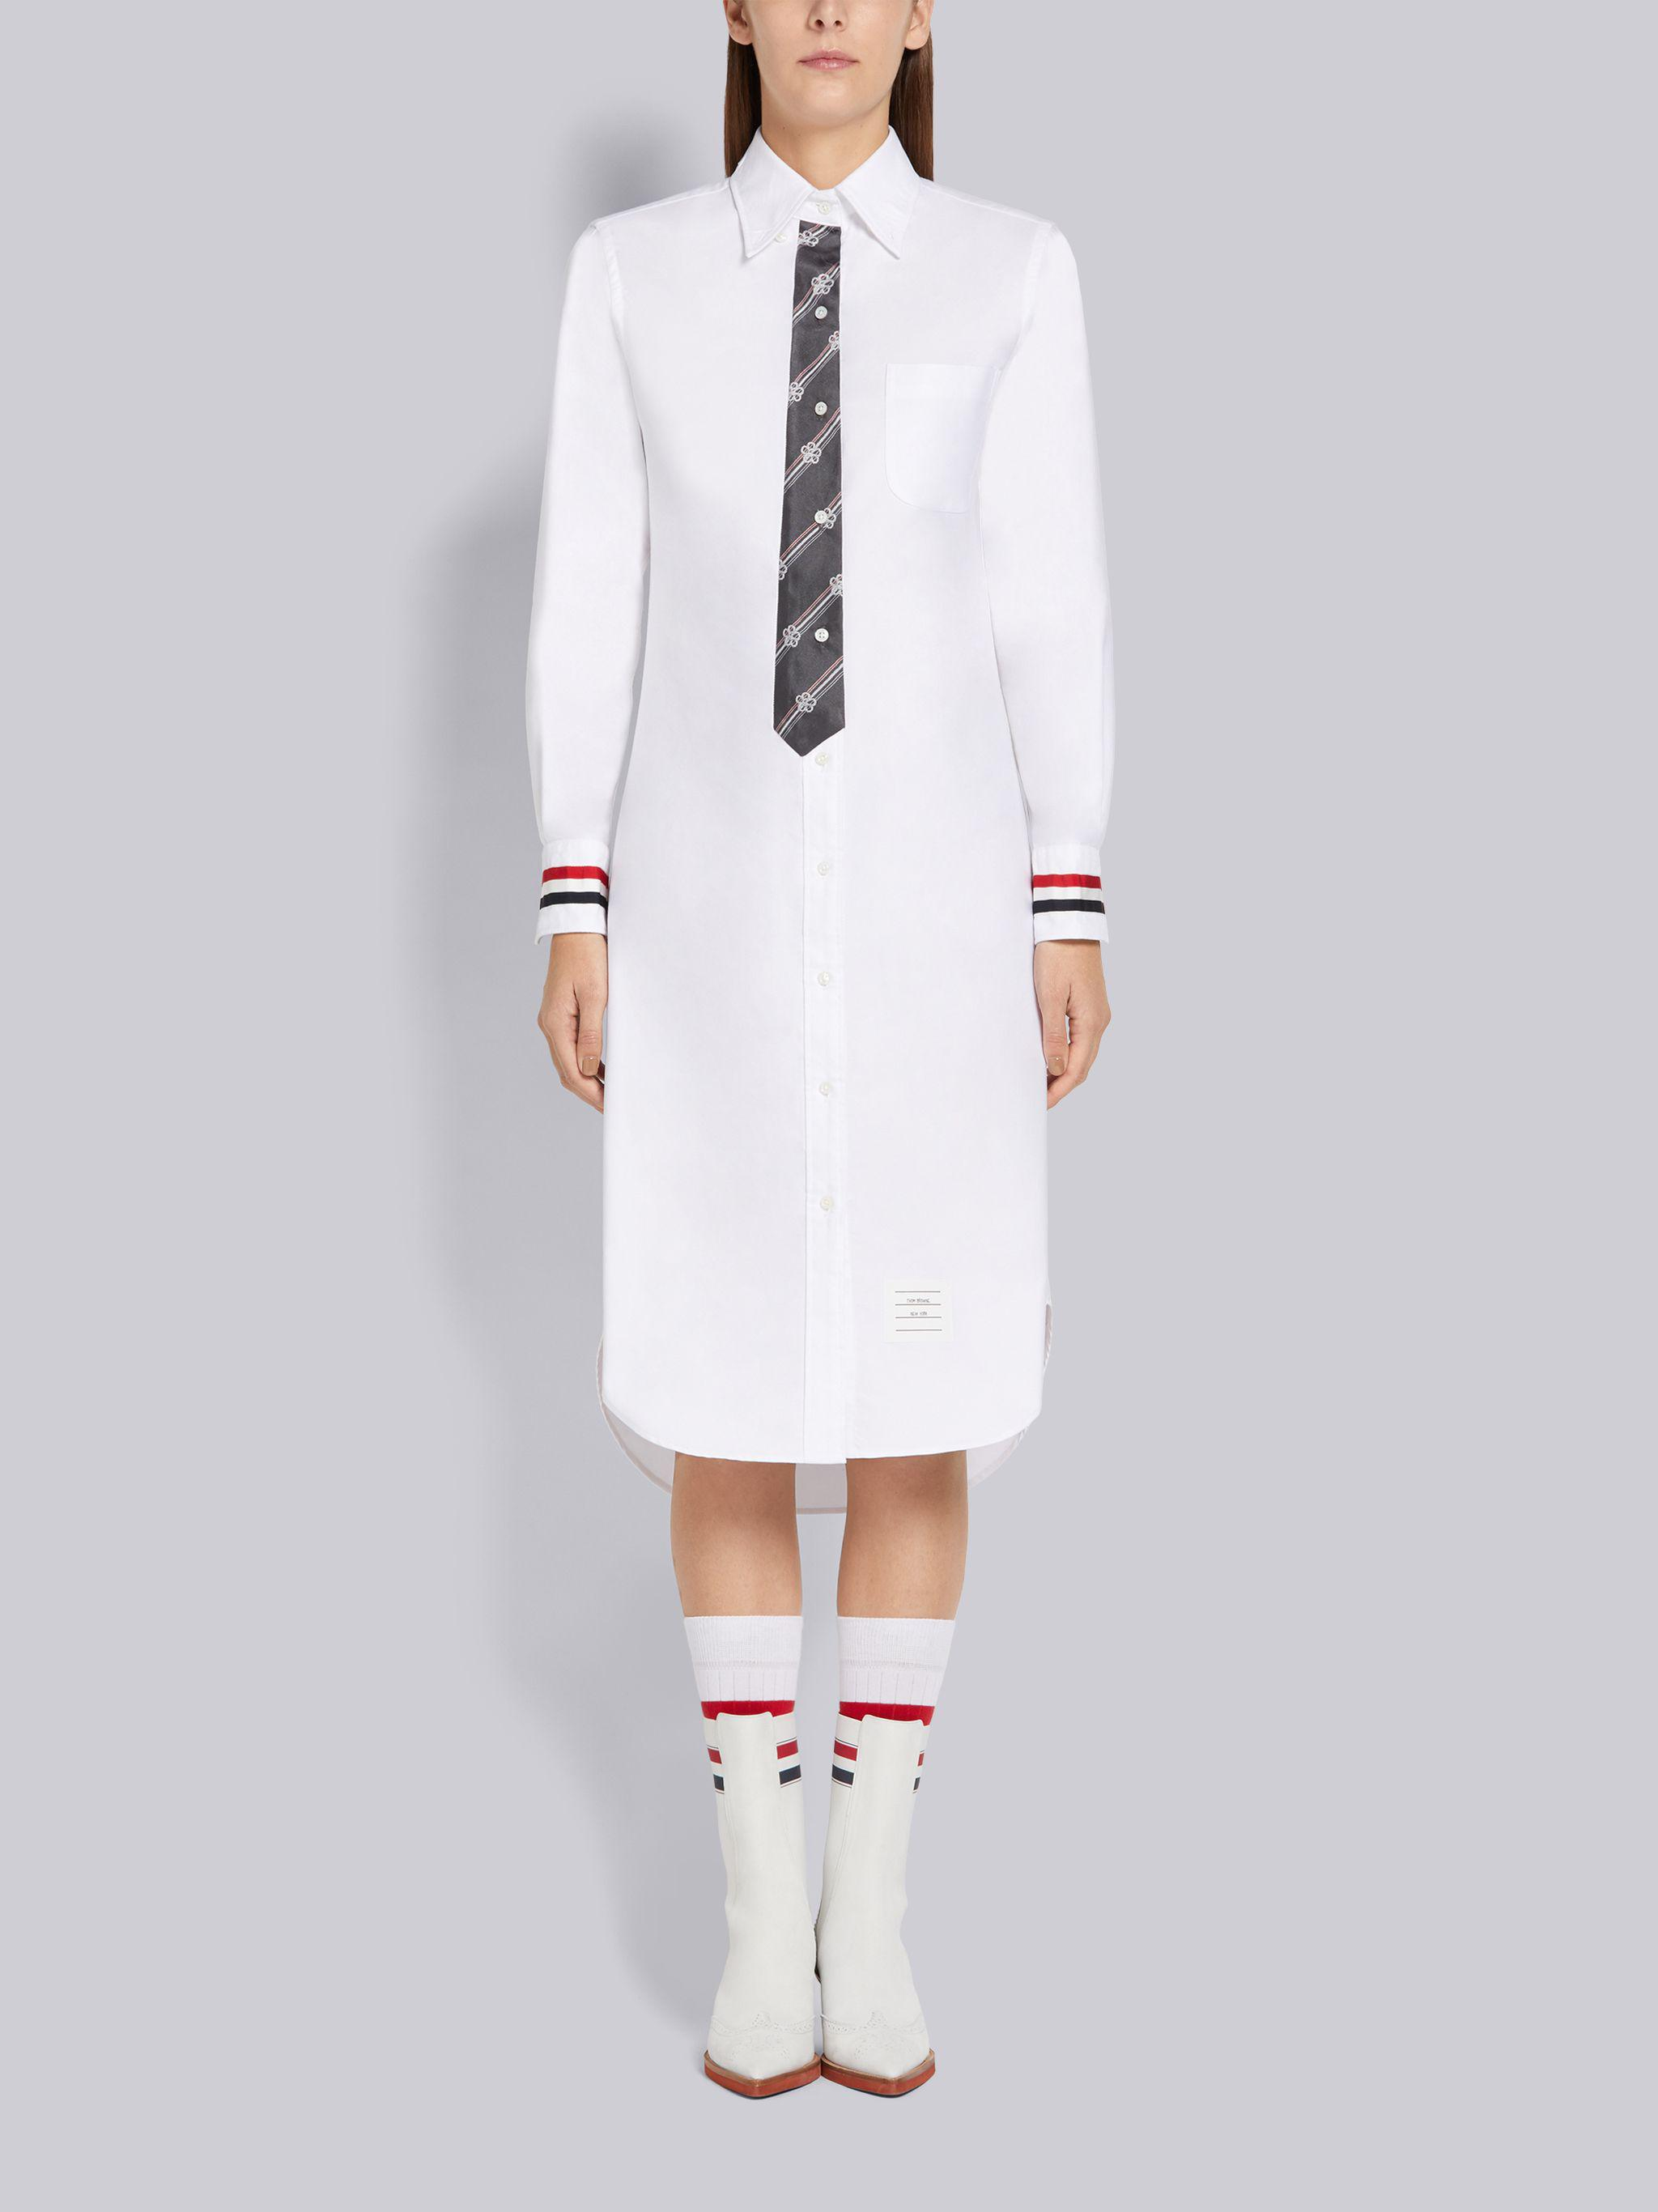 White Oxford Button Down Long-sleeved Classic Shirtdress With Tie